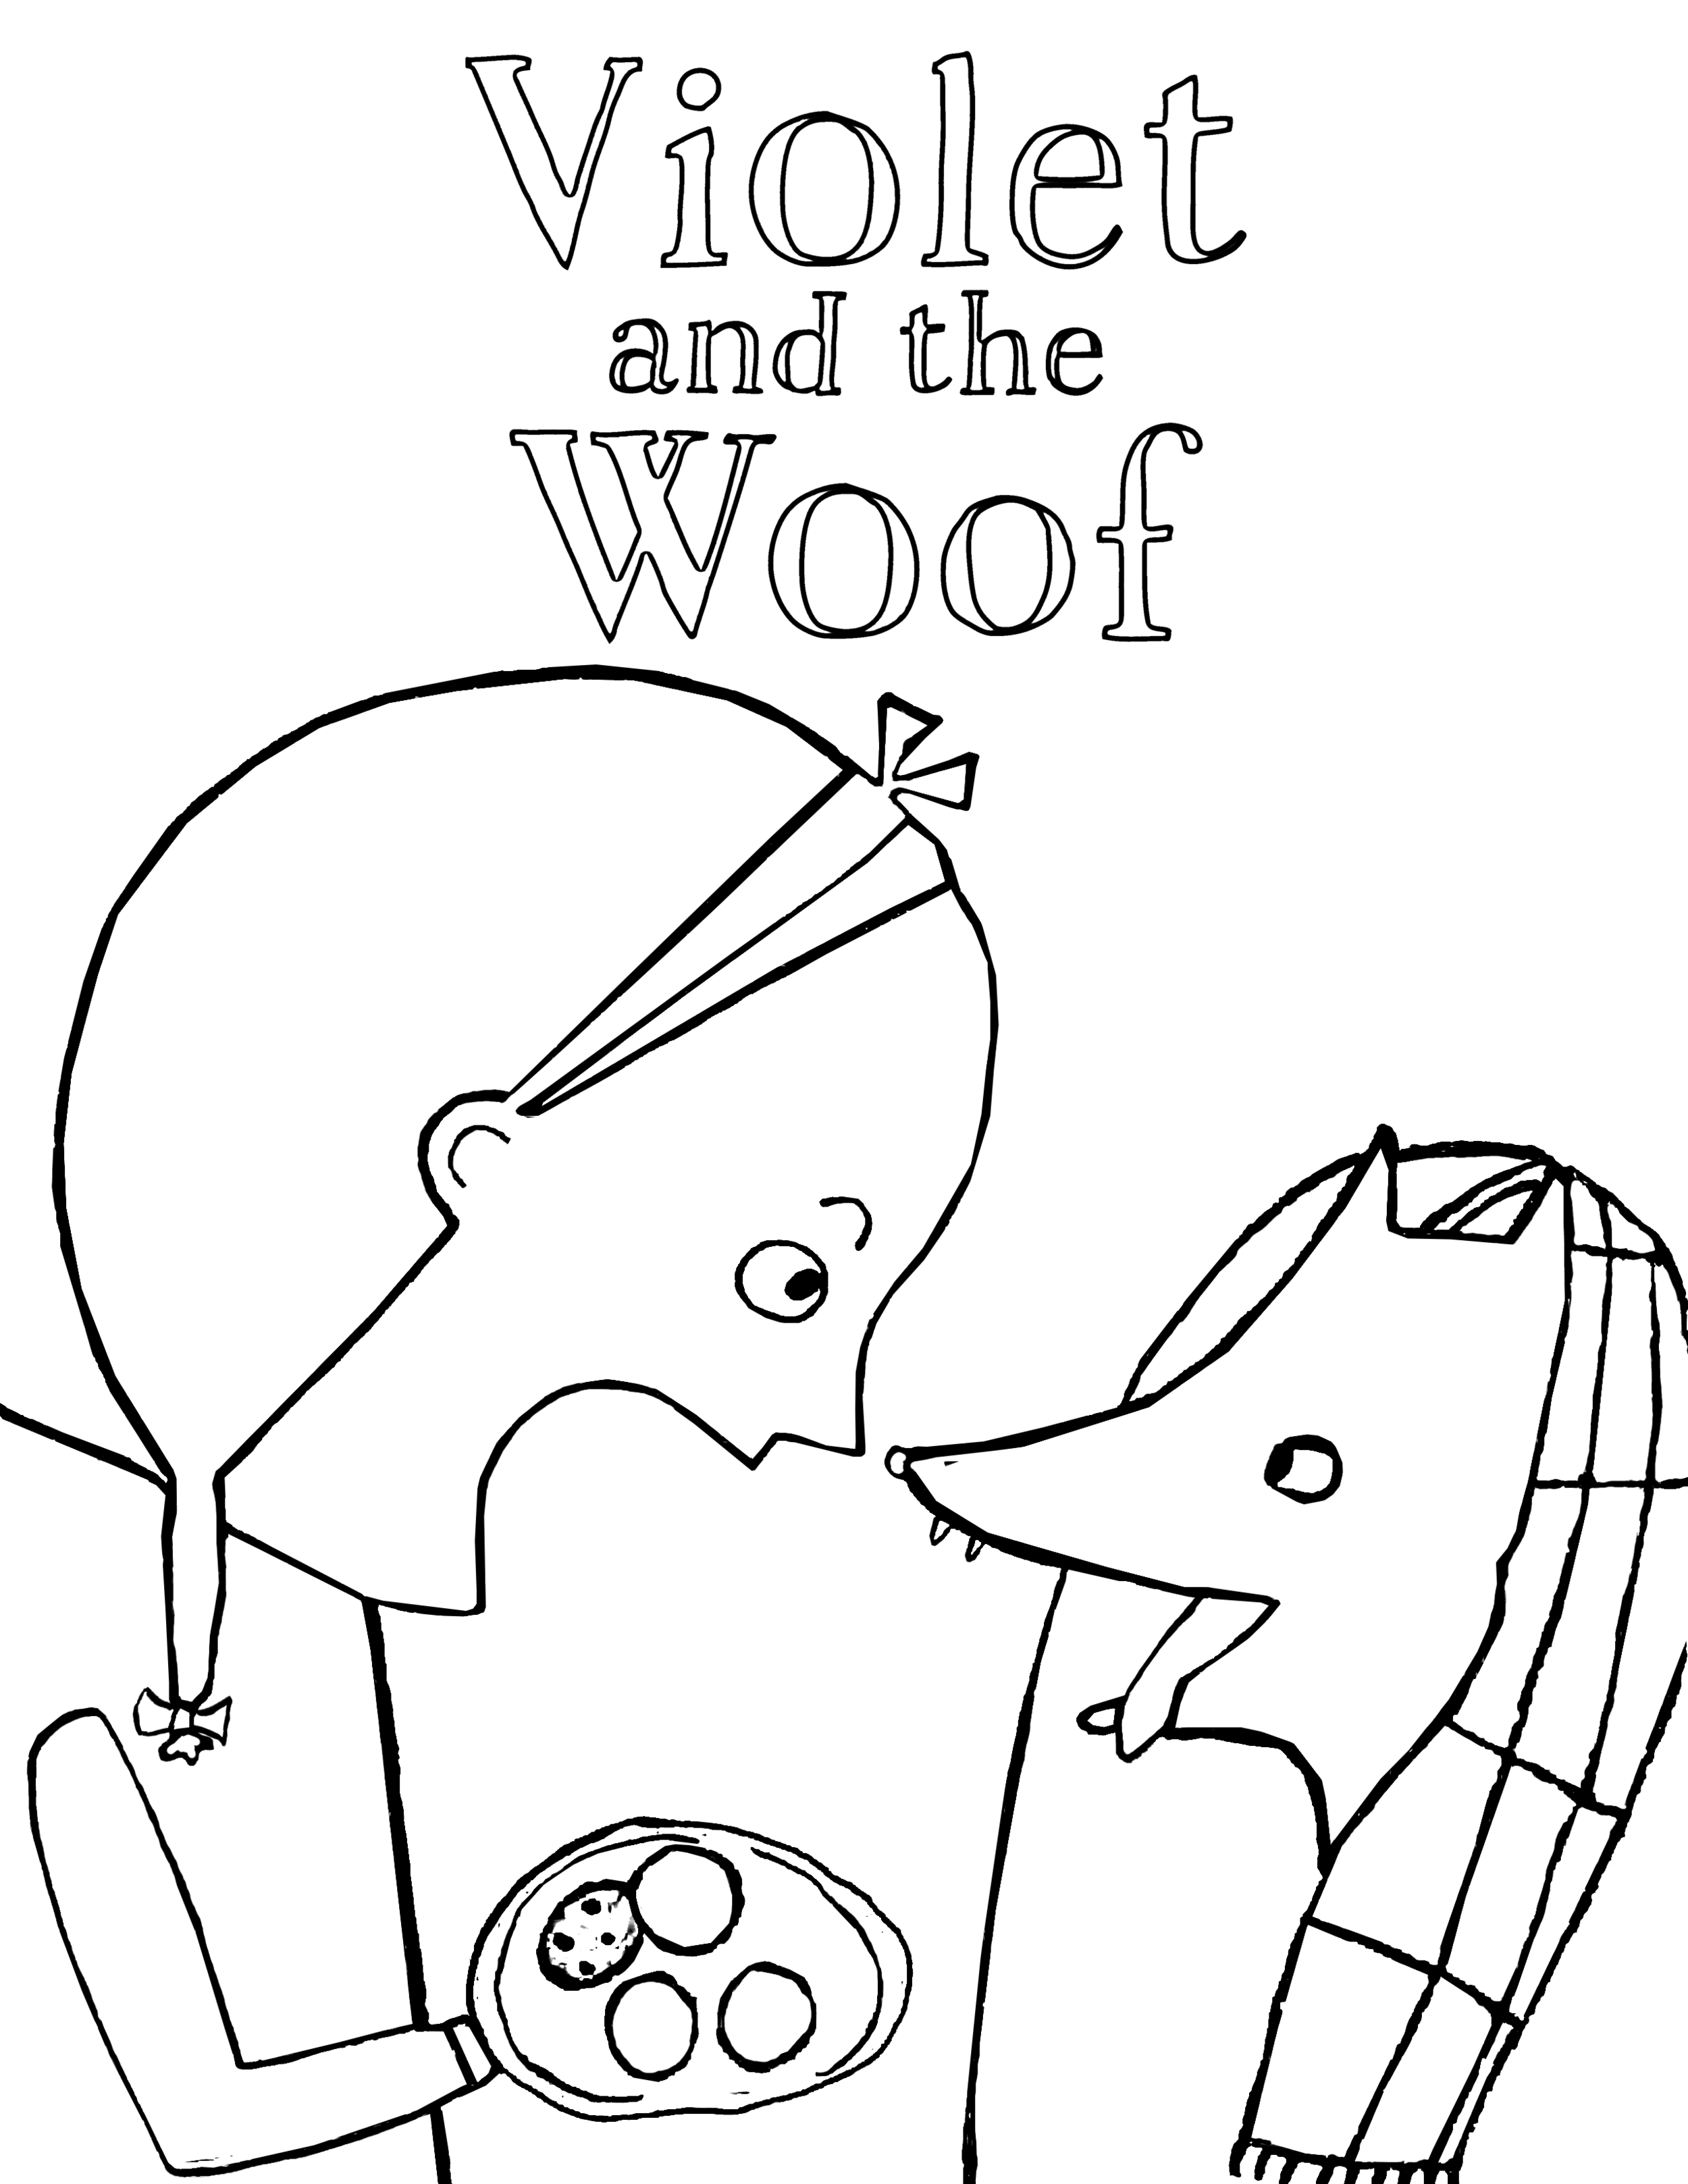 Violet and the WOOF! a free printable coloring page from Violet and the Woof by Rebecca Grabill and Dasha Tolstikova